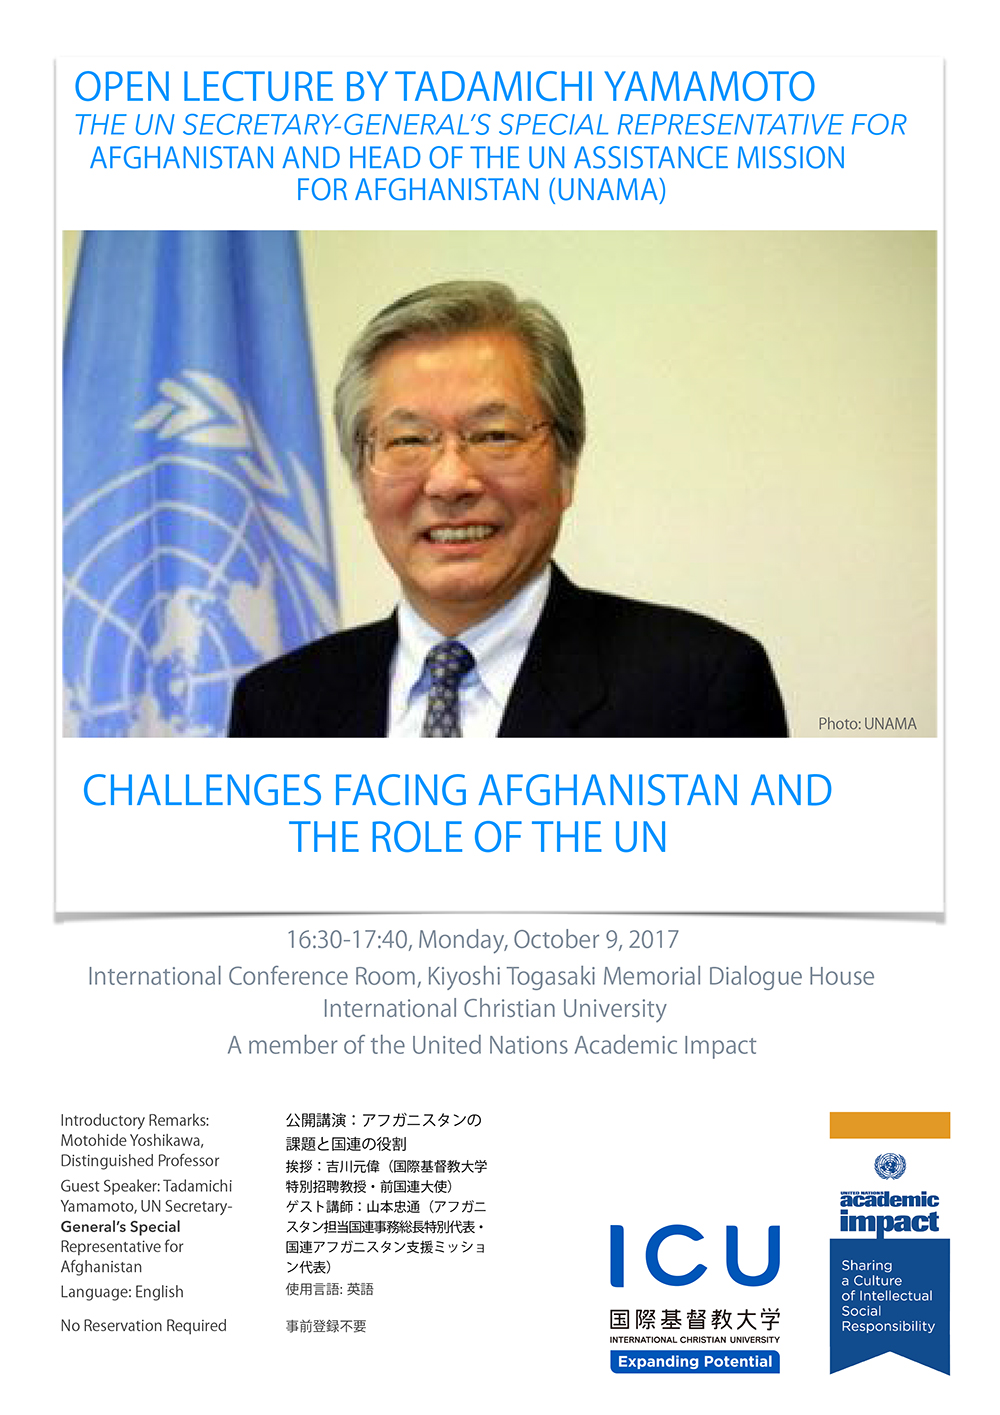 1009-Open-Lecture-by-Amb-Yamamoto.jpg